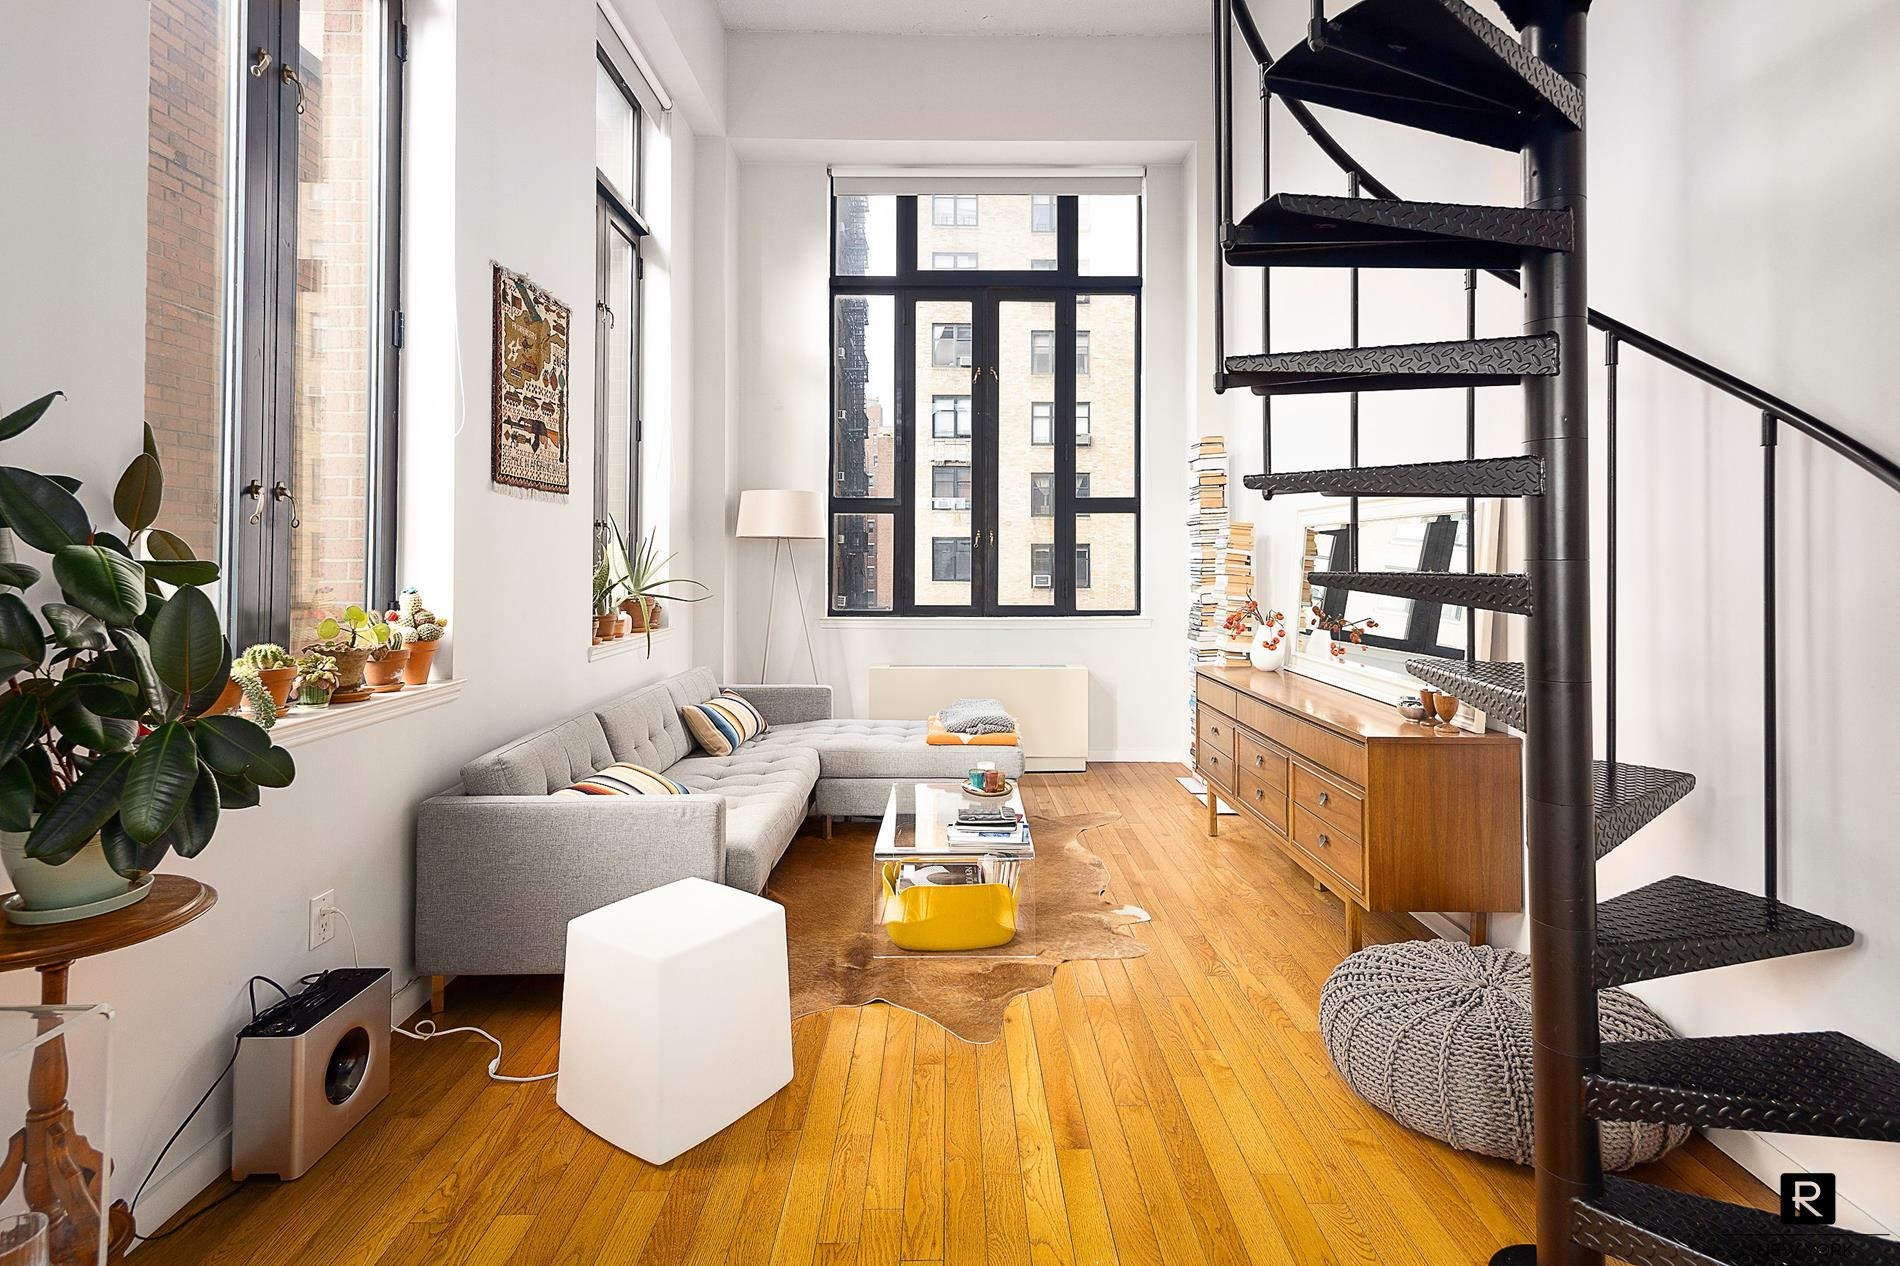 Apartment for sale at 176 West 86th Street, Apt 7-A